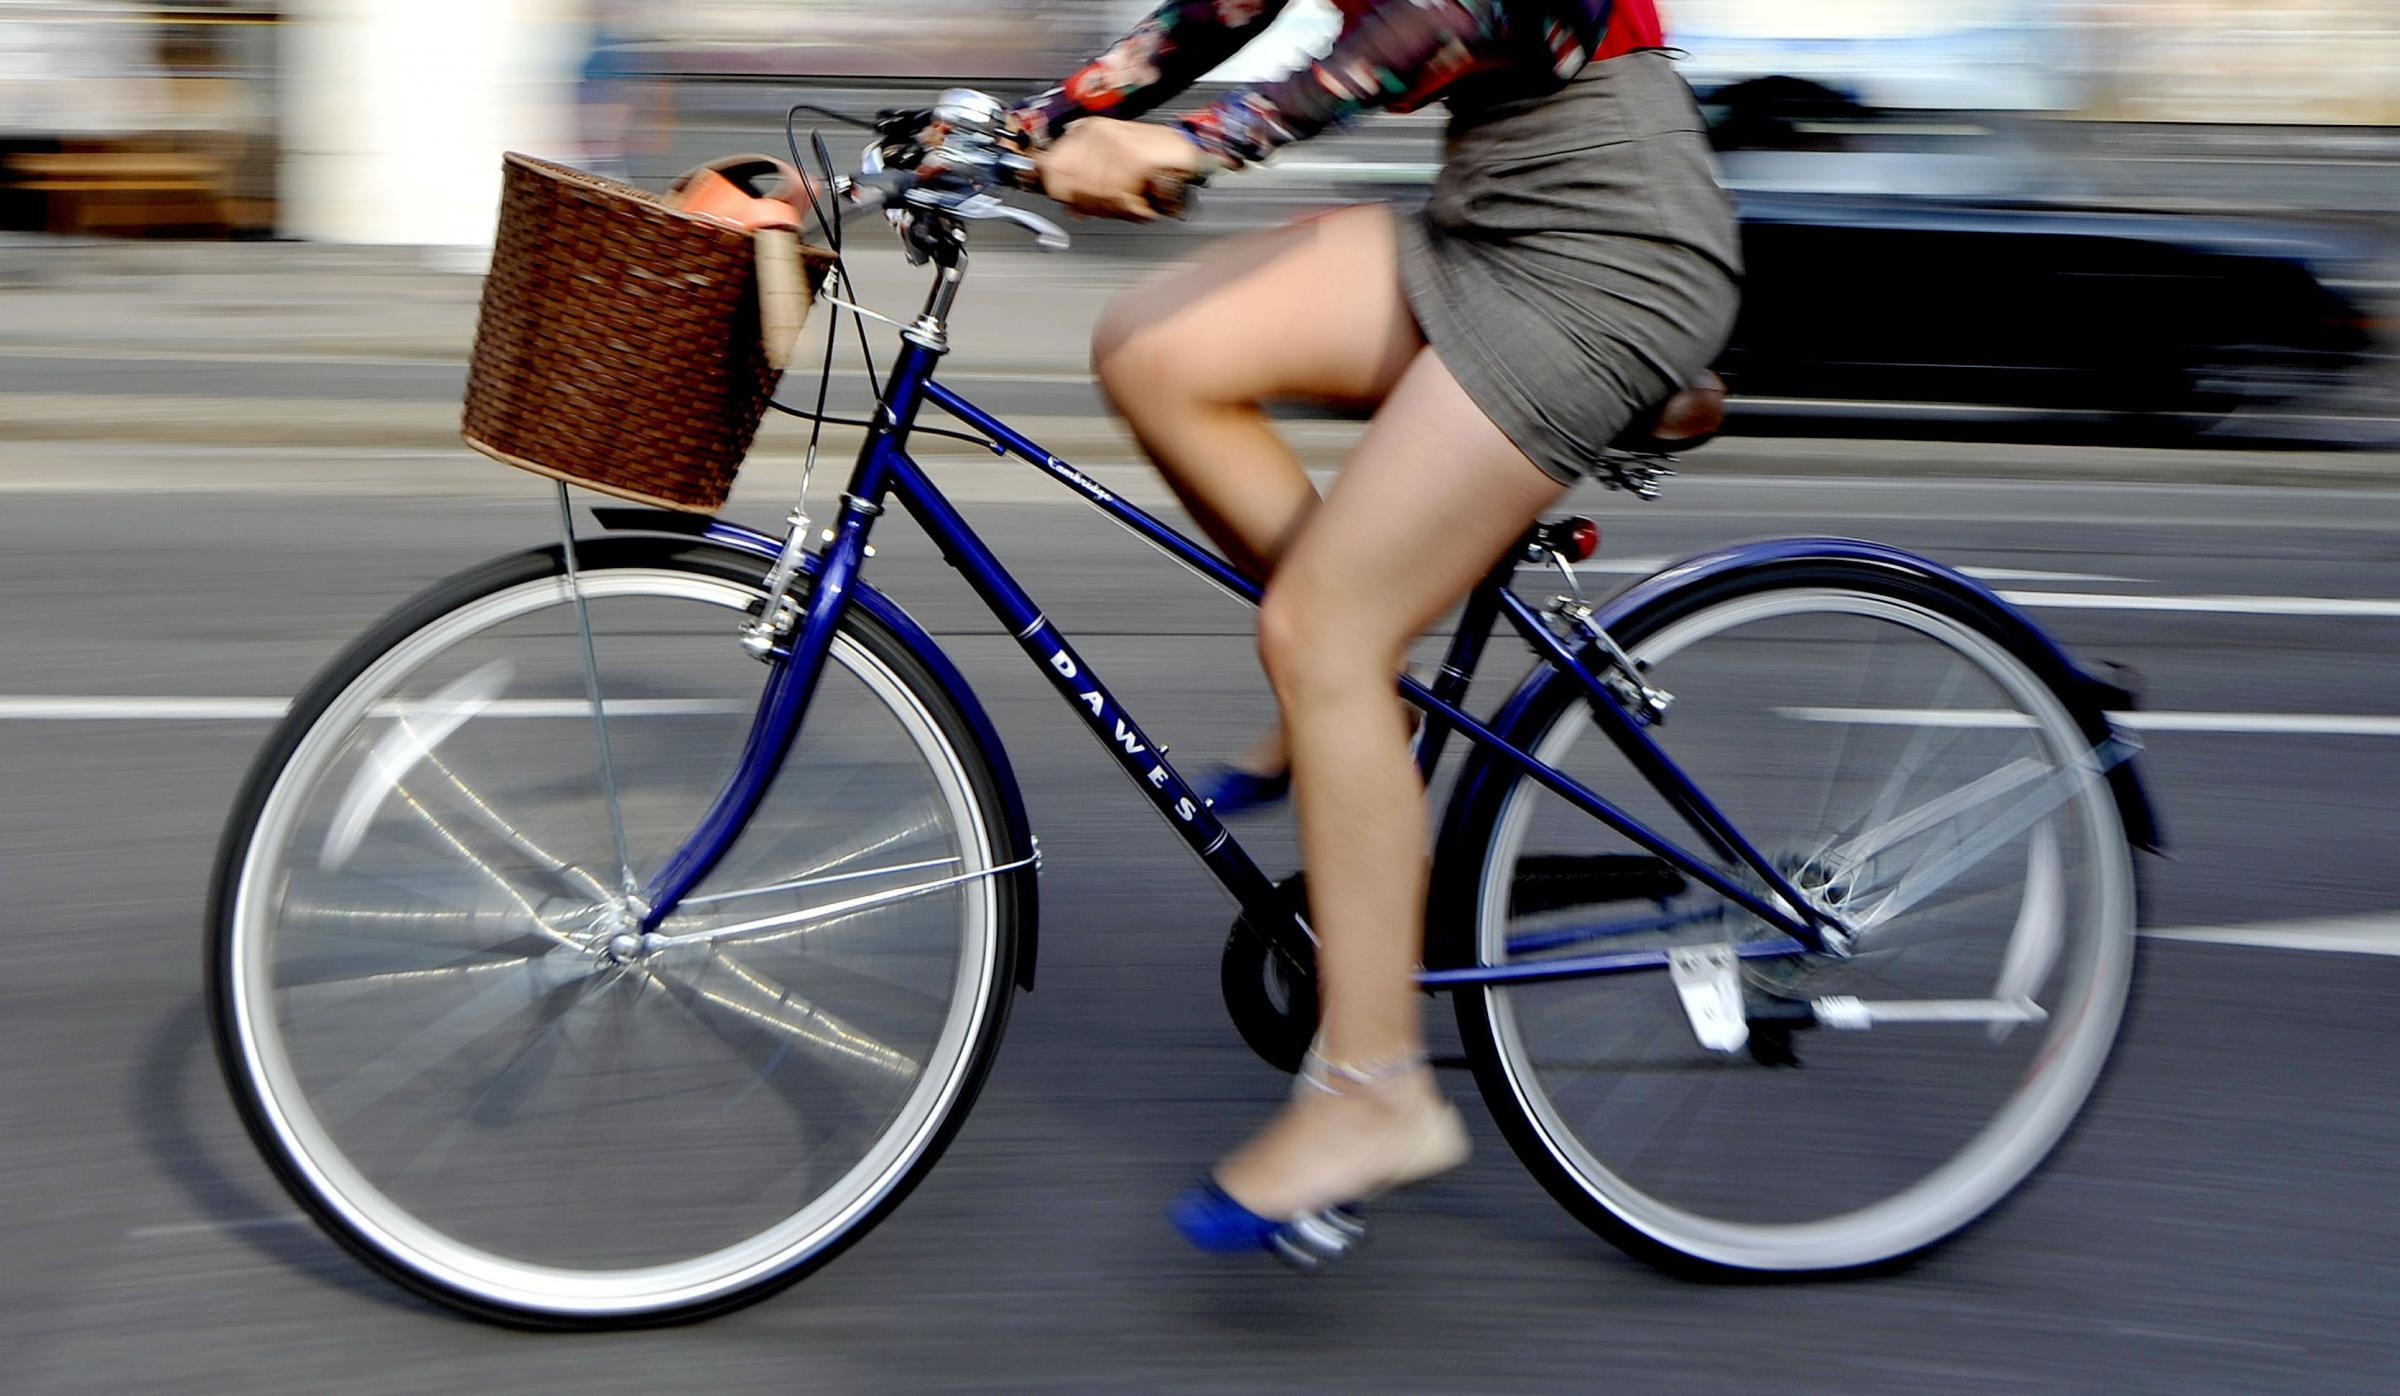 File photo dated 07/08/13 of a woman riding a bike as cyclists are considered to be more intelligent and charitable than the average person, according to a new report. PRESS ASSOCIATION Photo. Issue date: Friday January 10, 2014. A study for the British H